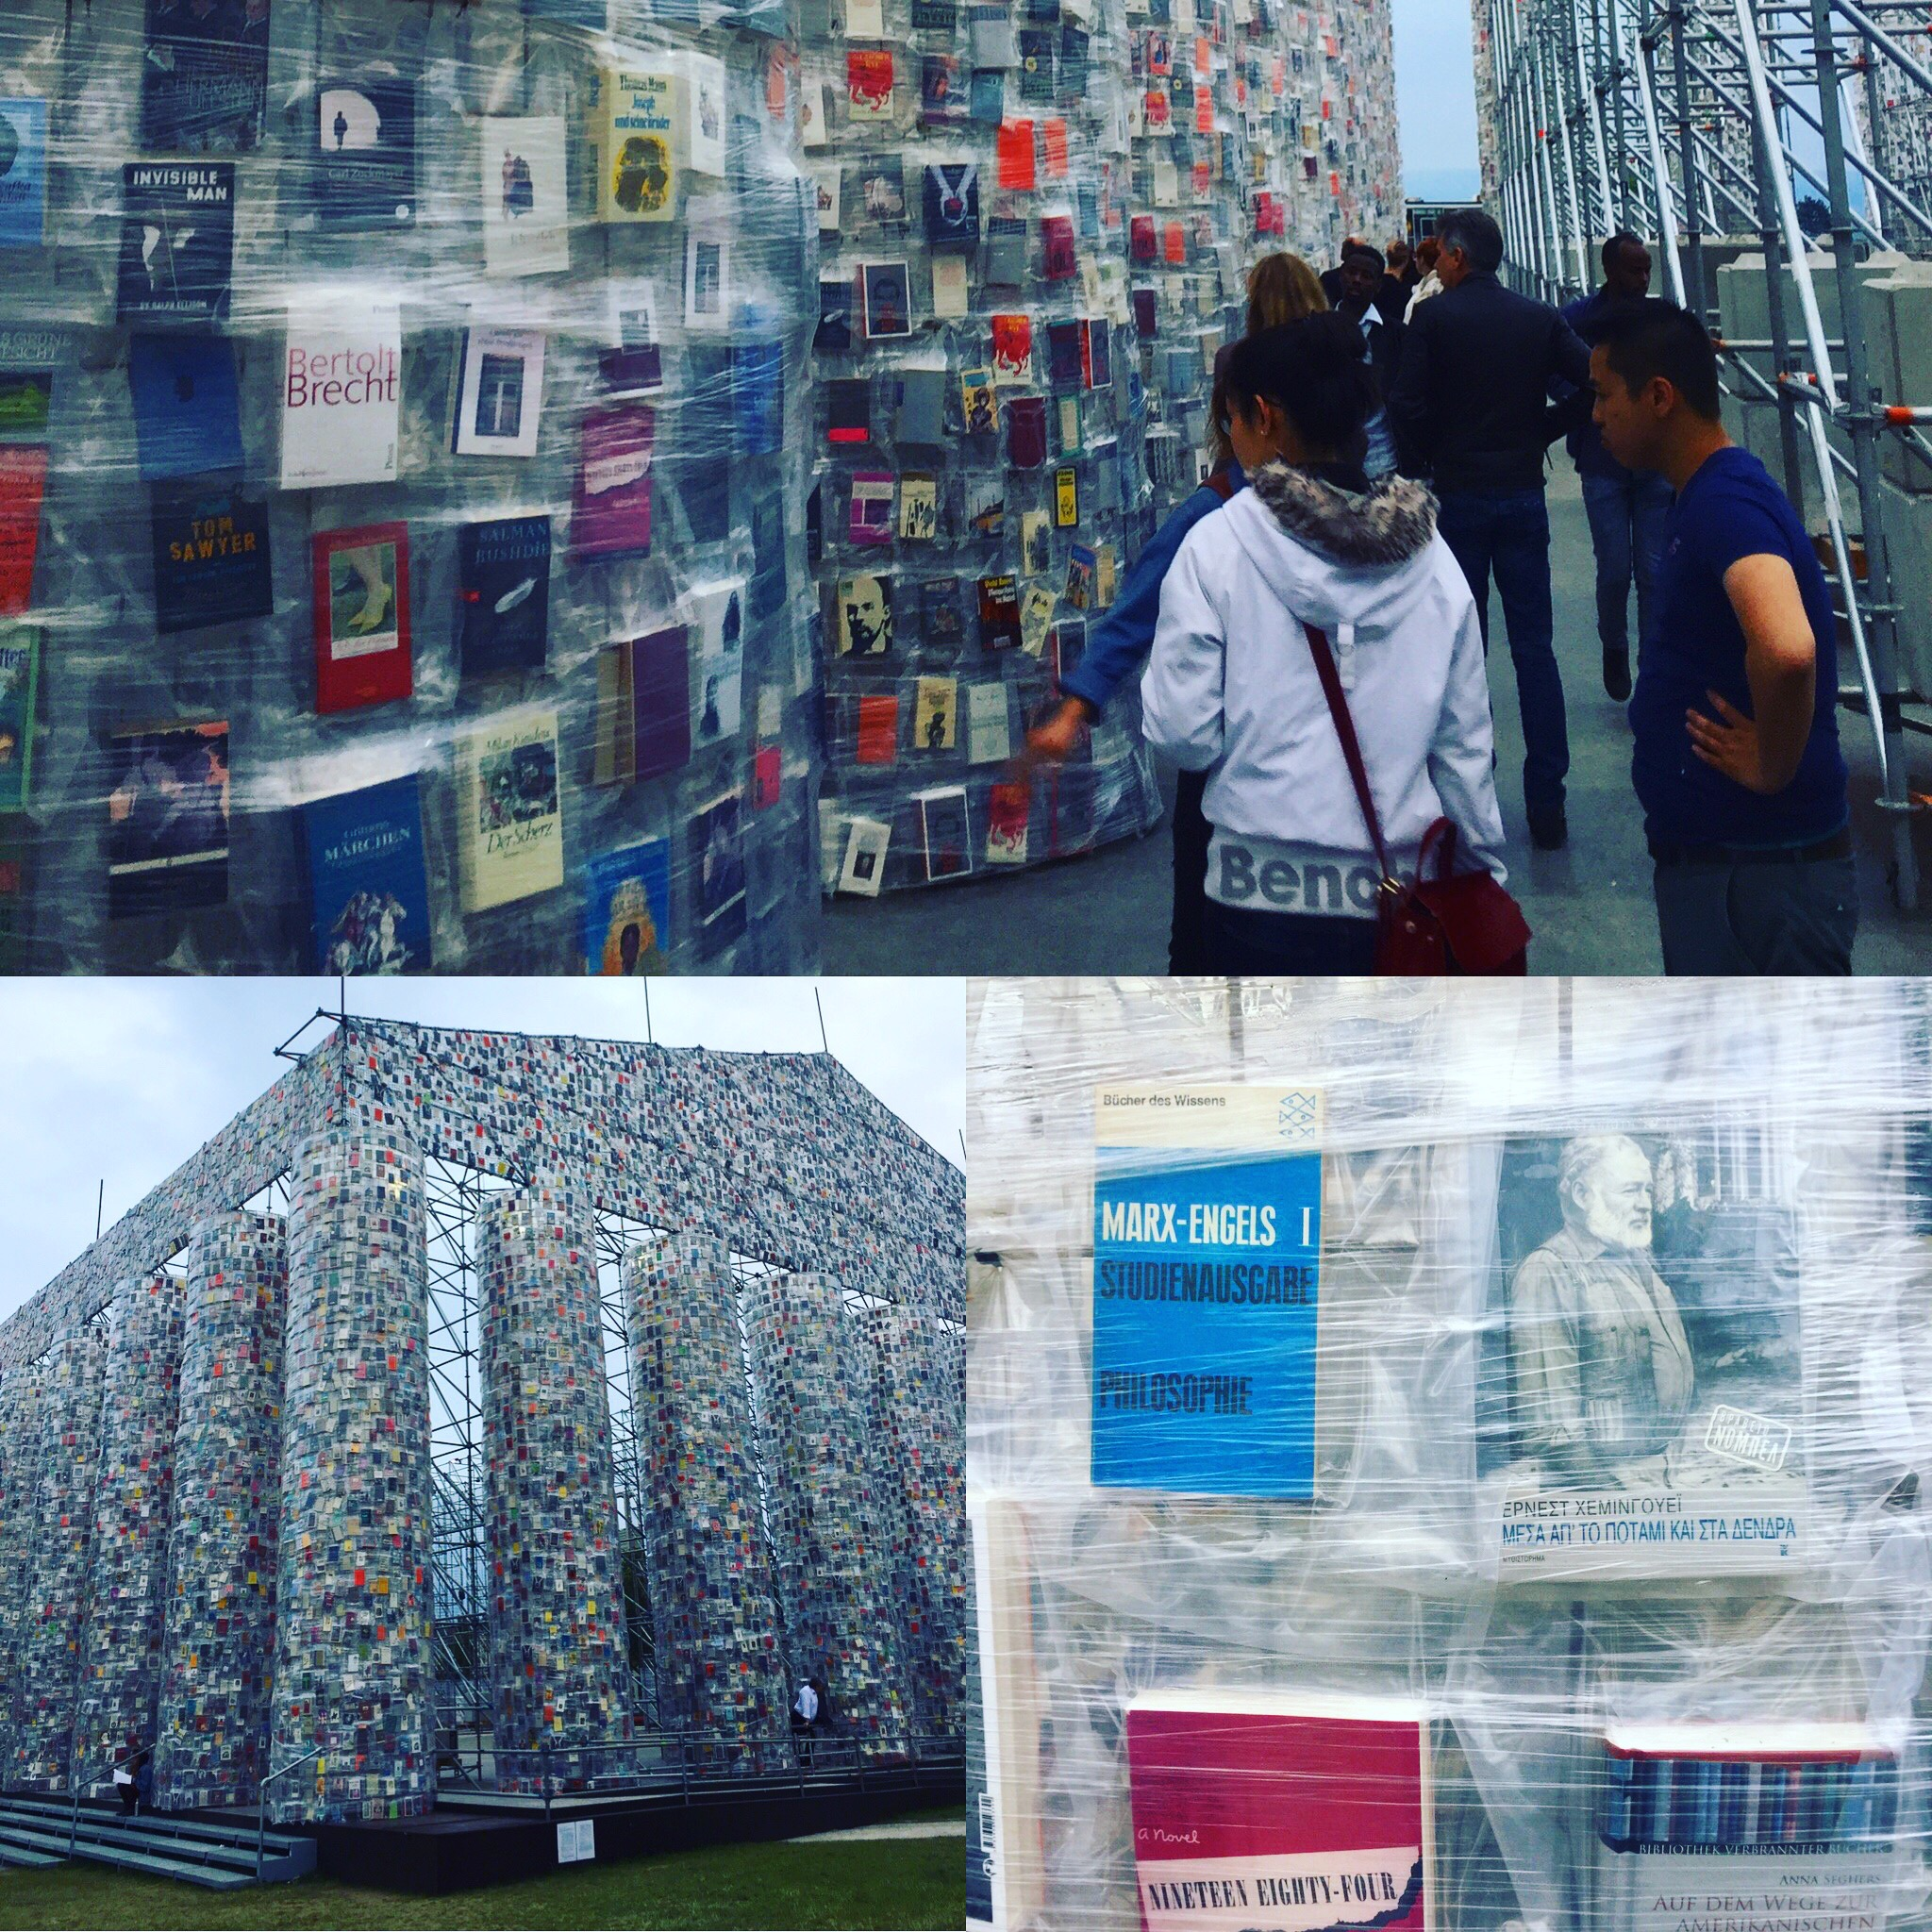 Getting a closer look at the Parthenon of Books by Marta Minujin featuring formerly or currently banned books from all over the world.